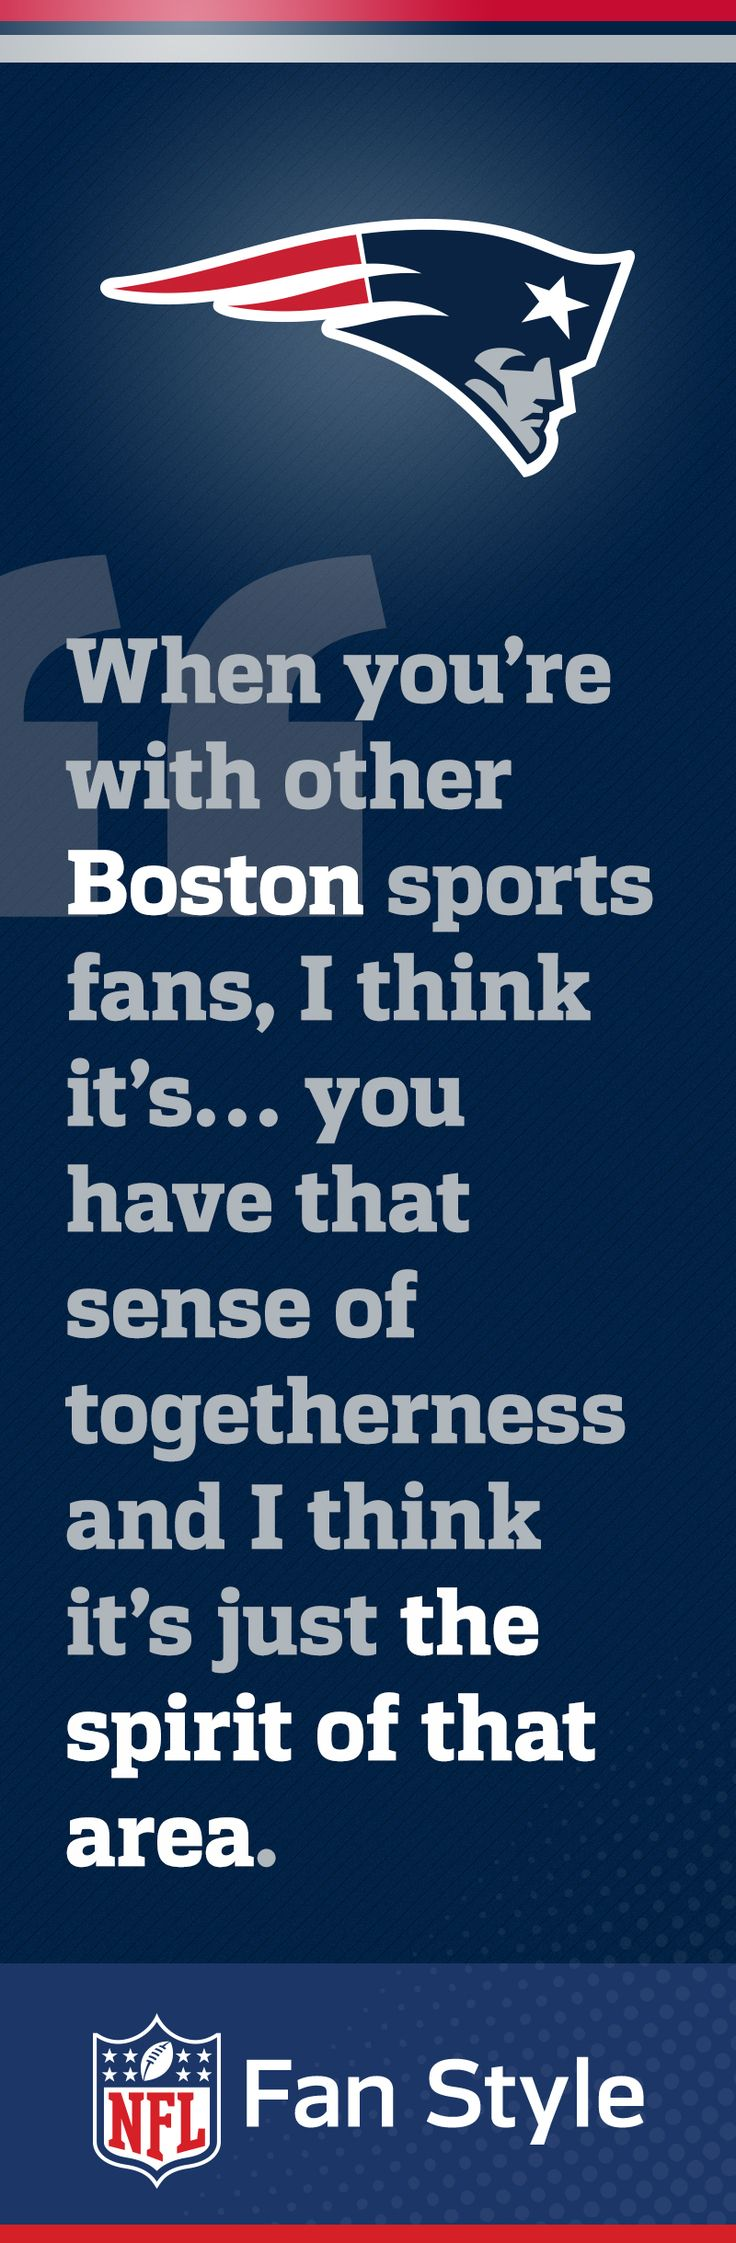 "The spirit of the game means togetherness, and for New England Patriots fans, the bond has never been tighter. ""When you're with other Boston sports fans, I think it's...you have that sense of togetherness and I think it's just the spirit of that area."""